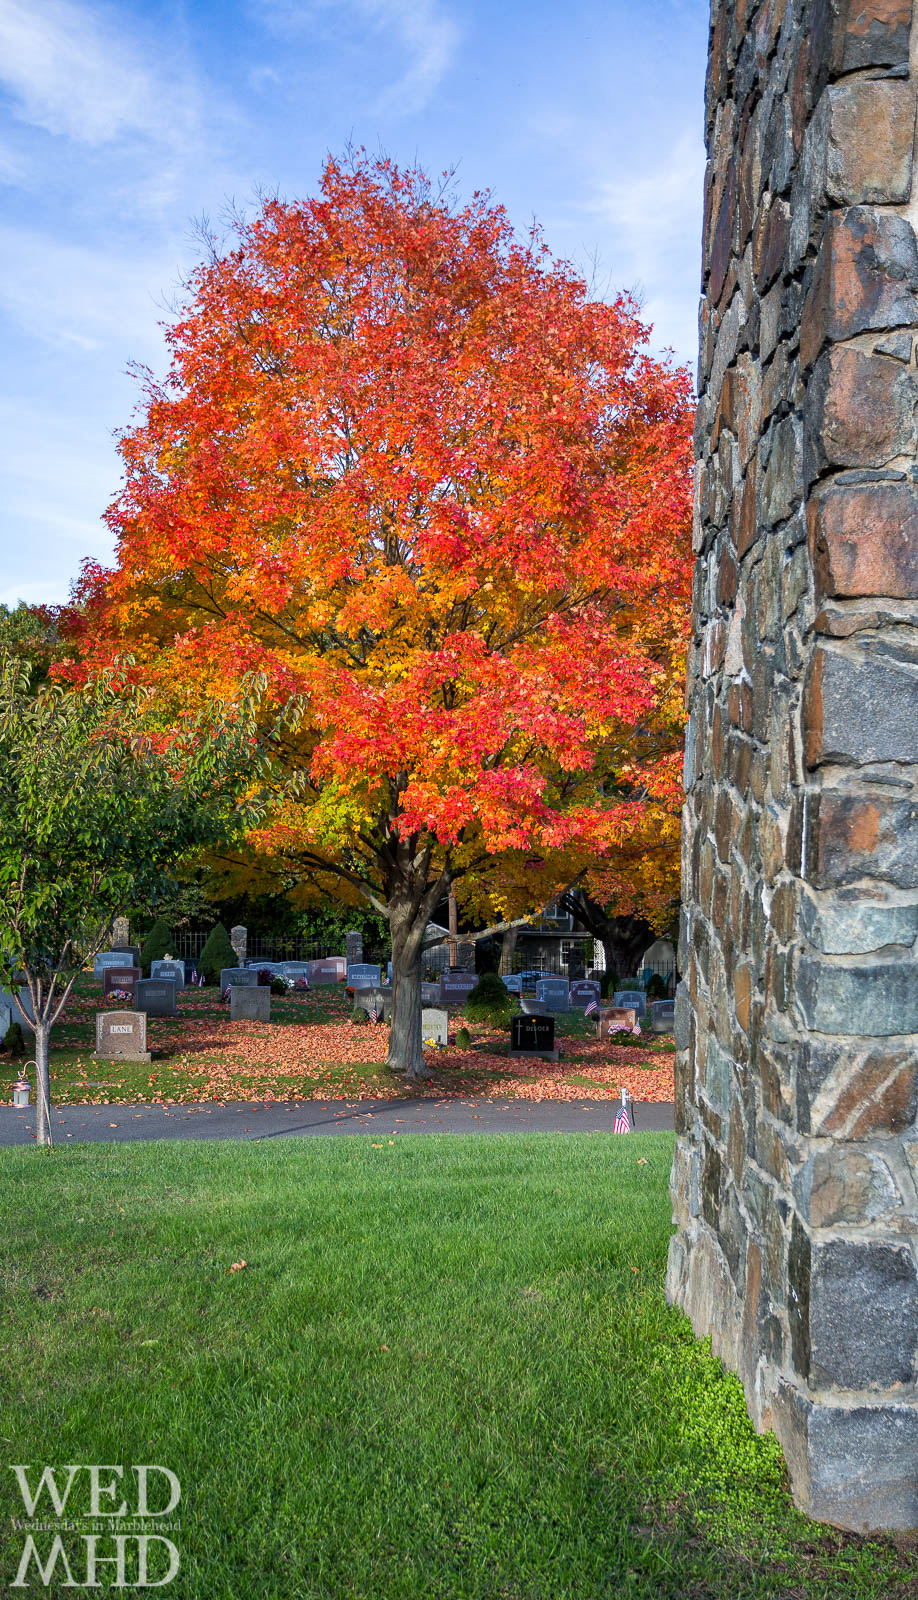 A maple tree exhibits peak foliage at Waterside cemetary on a mid-October day. A rock wall serves as a frame for the Fall view.